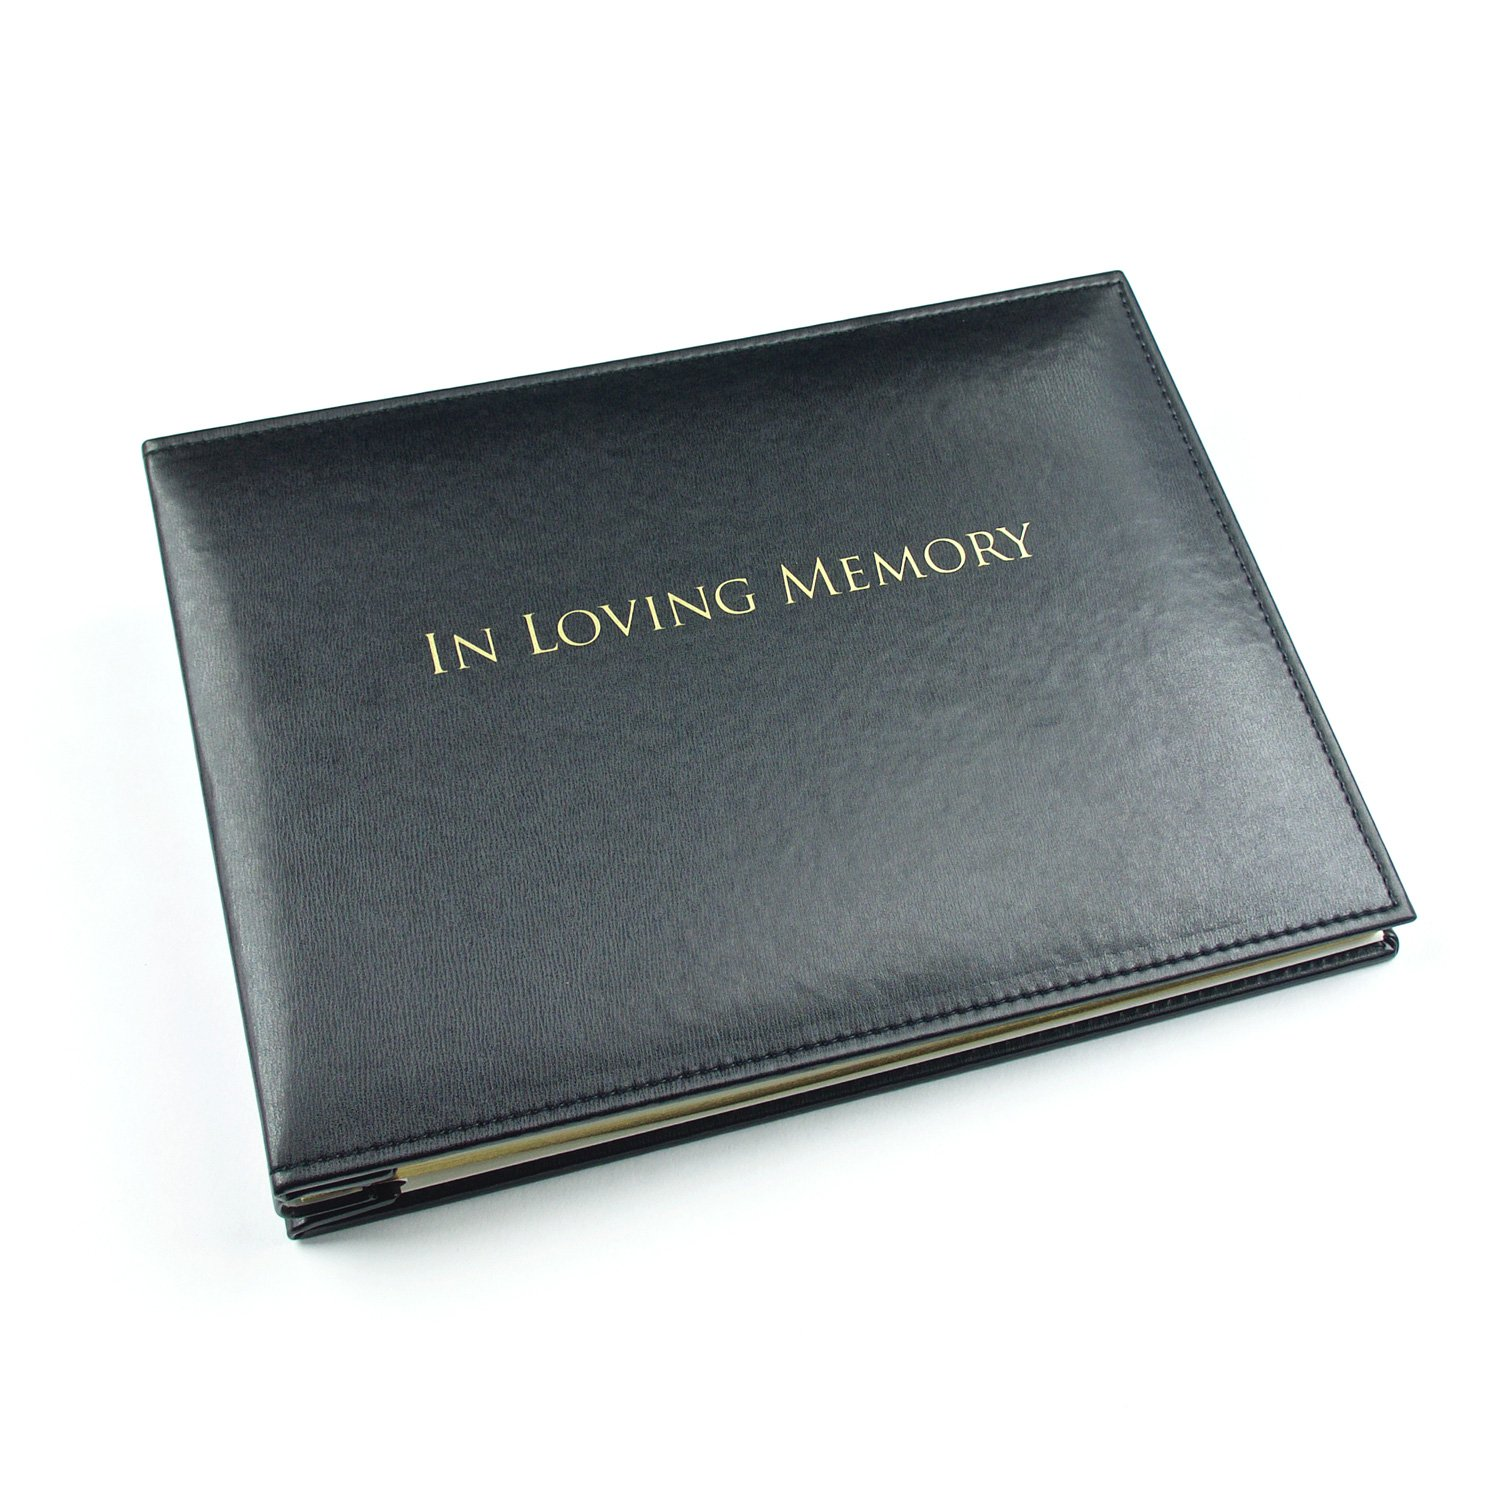 In Loving Memory Book - Condolence Book - Funeral Guest Book - Loose Leaf - Black 10.5 x 7.6 x 1.2inches